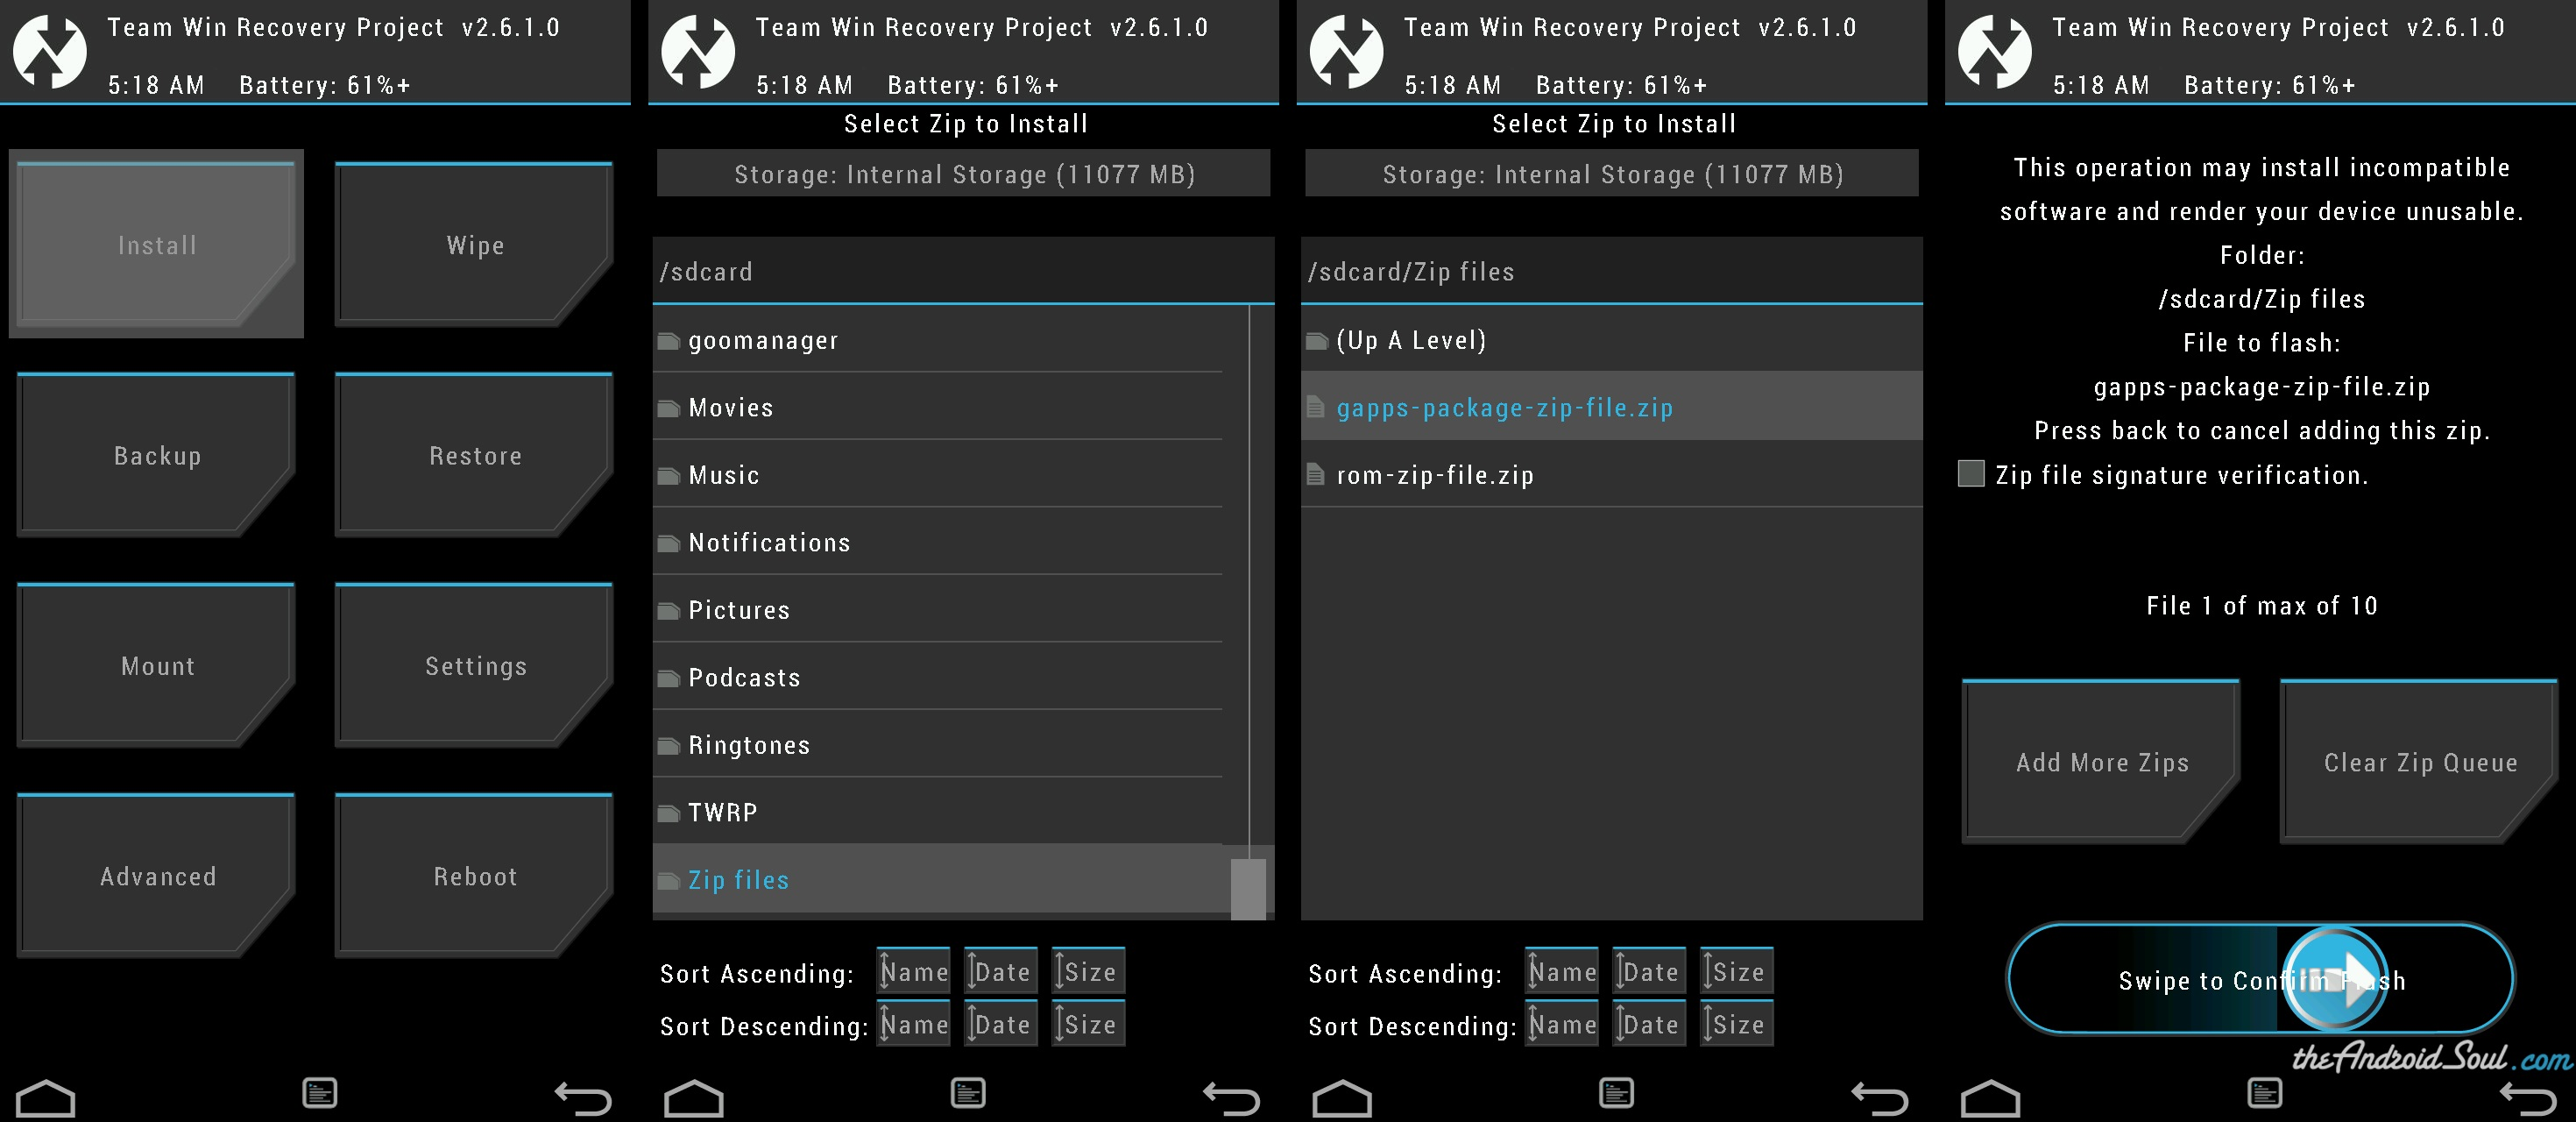 Flash-Gapps-package-.zip-file-using-TWRP-recovery